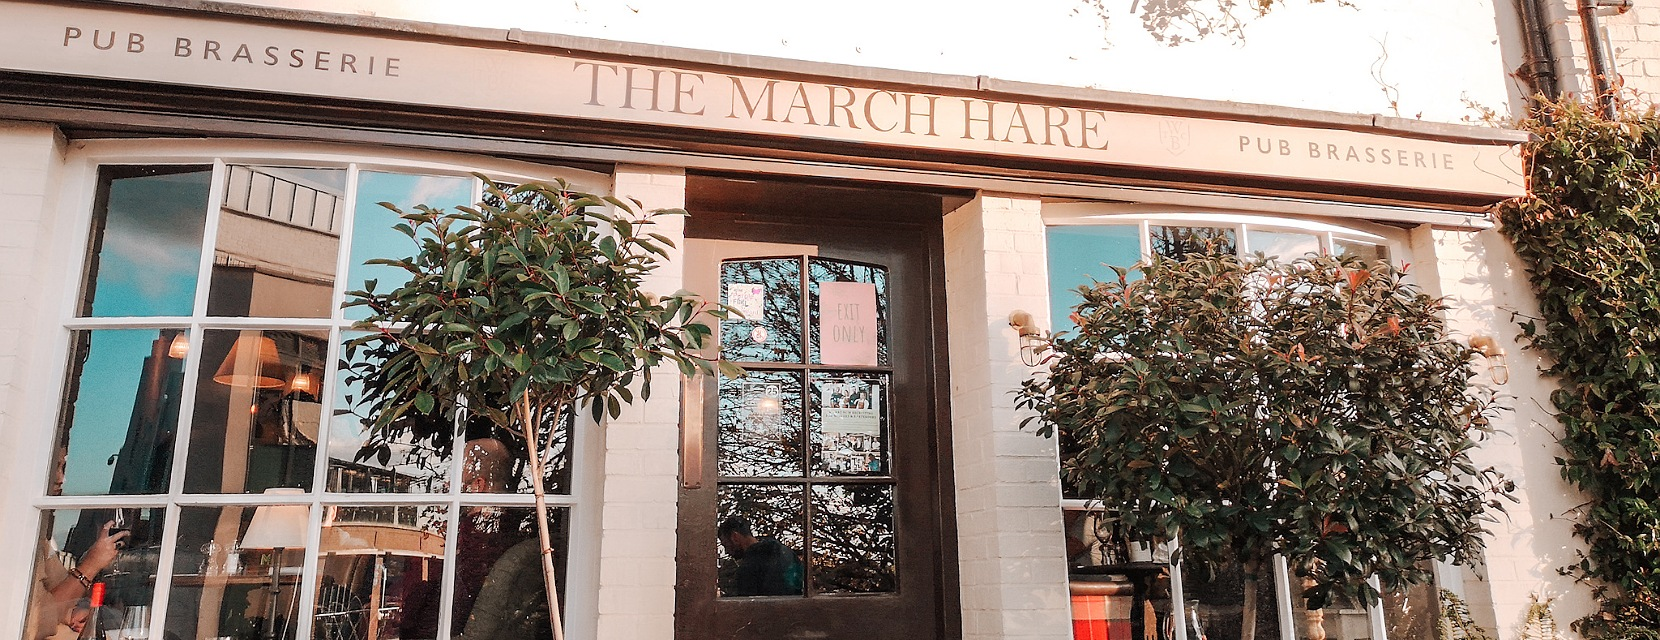 Sunday Lunch at The March Hare, Guildford 42